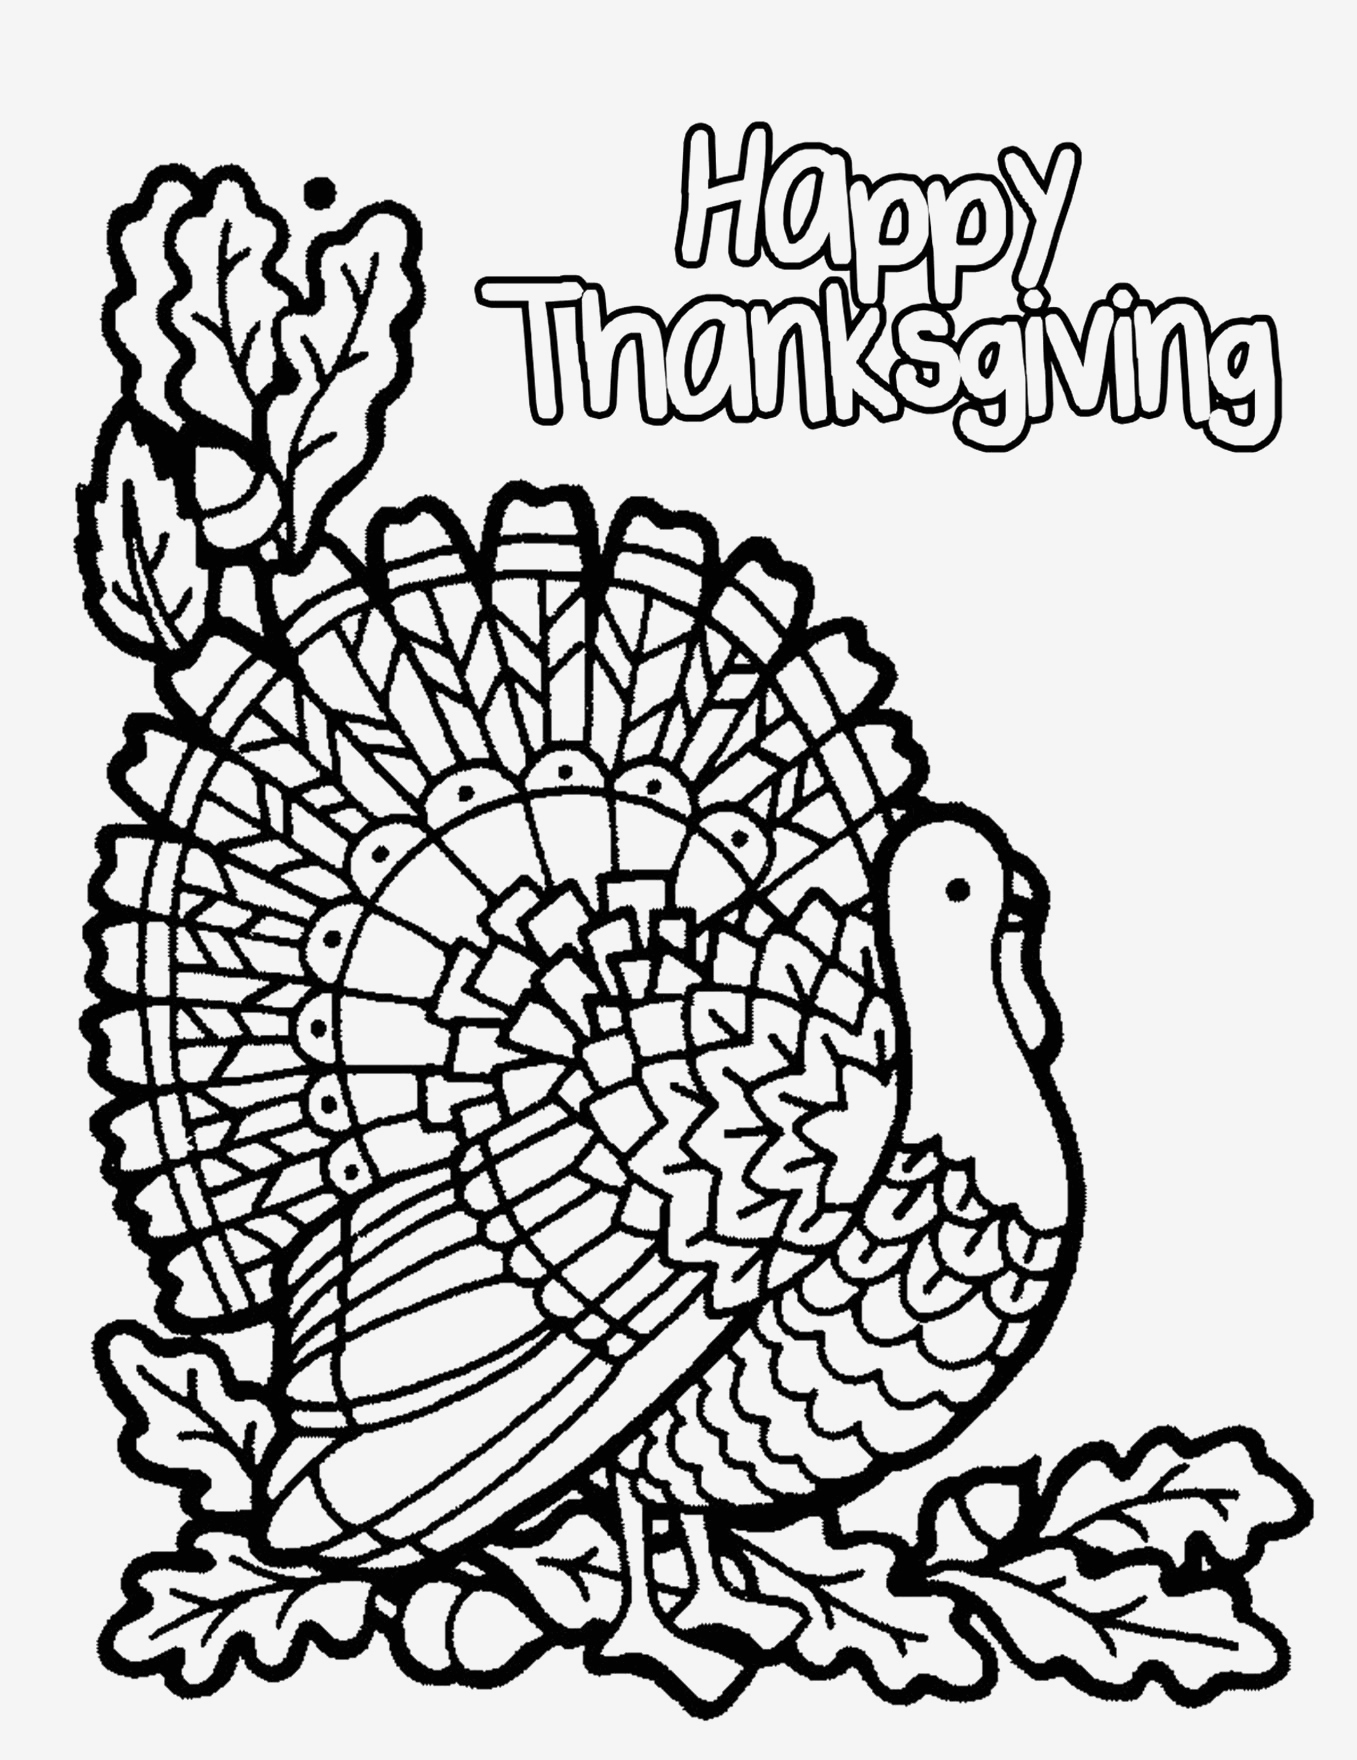 printable happy thanksgiving coloring pages Download-Free Printable Thanksgiving Coloring Pages top Free Printable Thanksgiving Coloring Page Beautiful Thanksgiving Coloring Pages 12-d